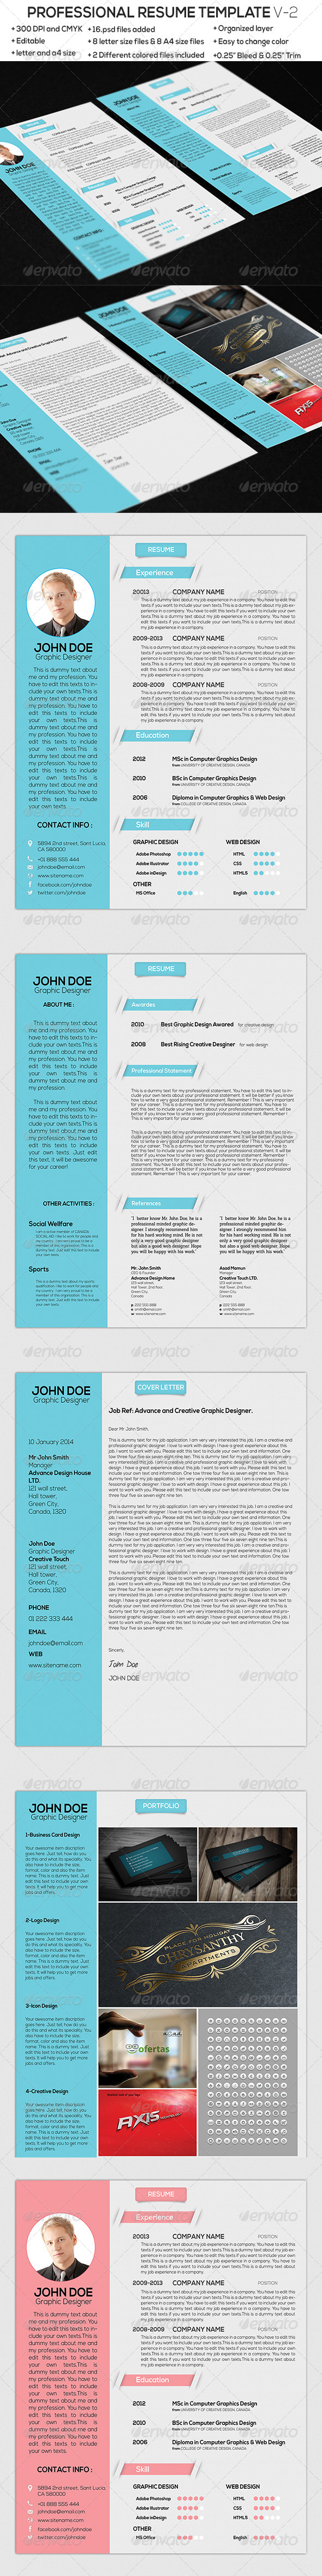 GraphicRiver Professional Resume Template V-1 6789587